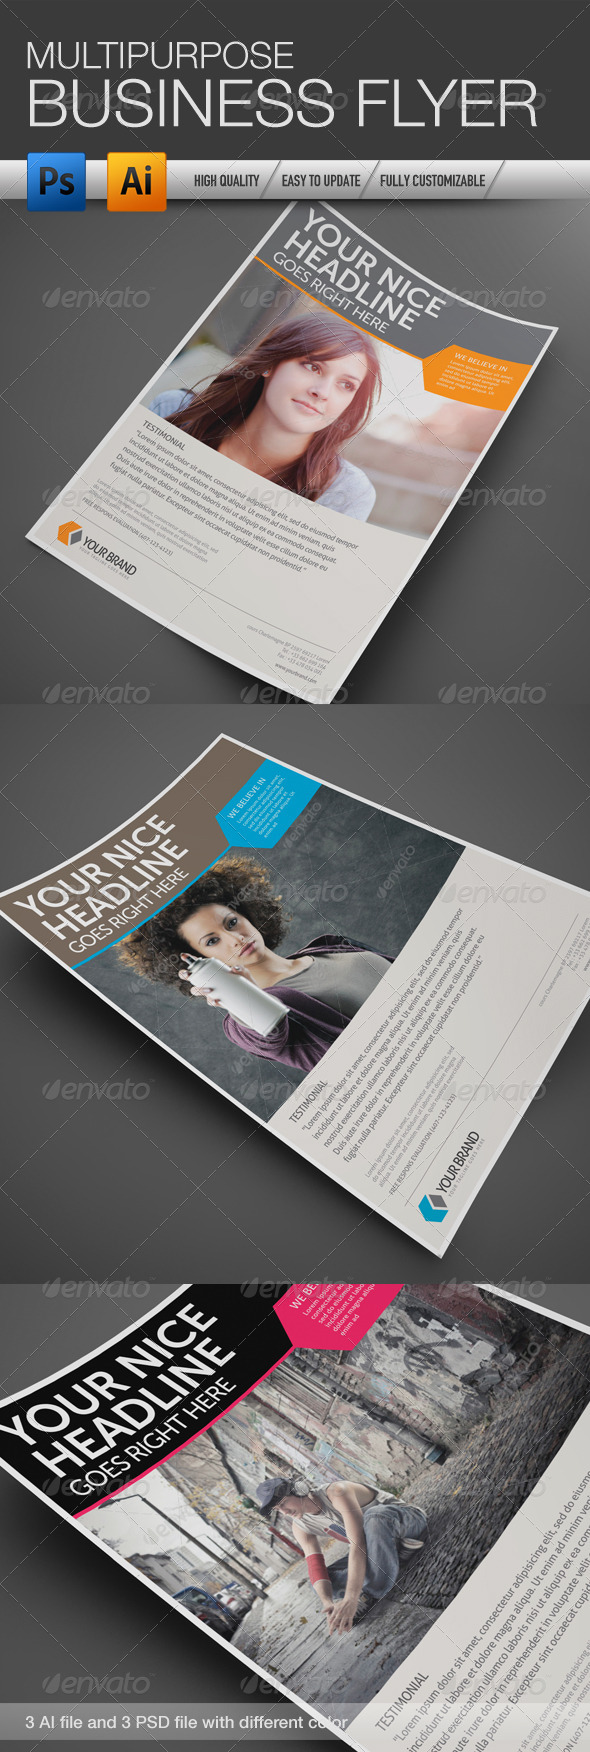 Multipurpose Business Flyer 4 - Corporate Flyers